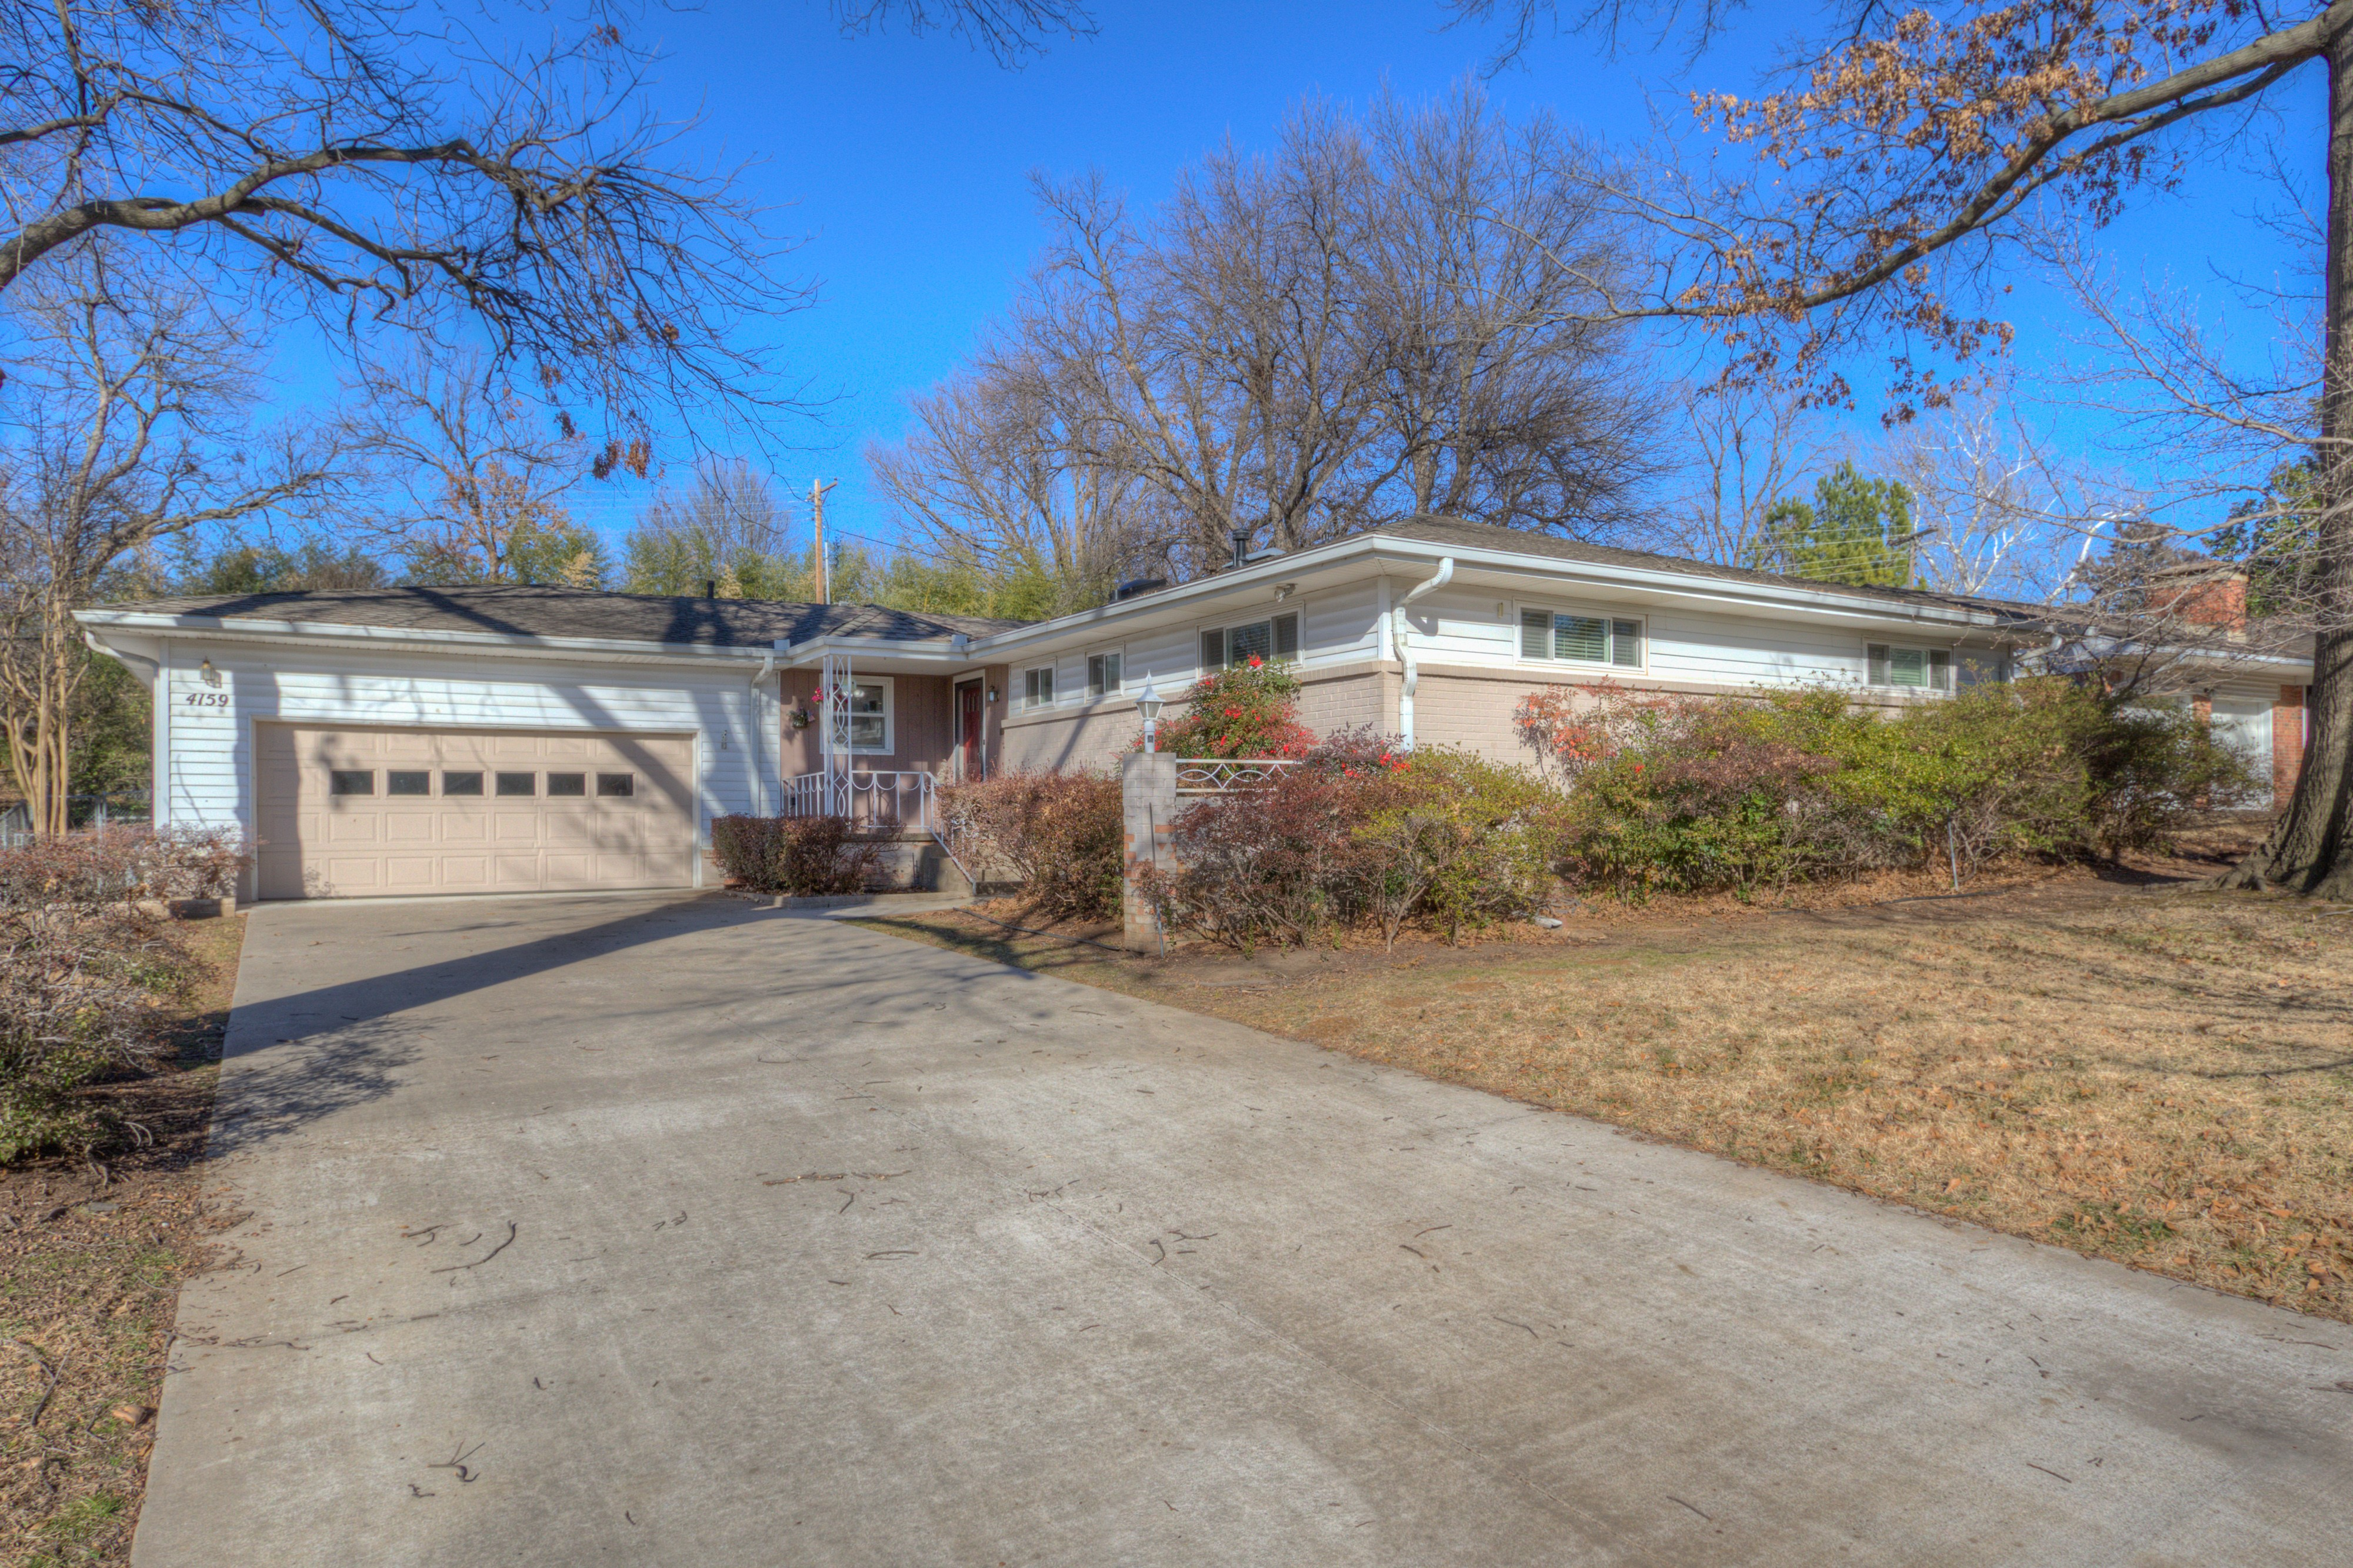 4159 E 44th Street Property Photo